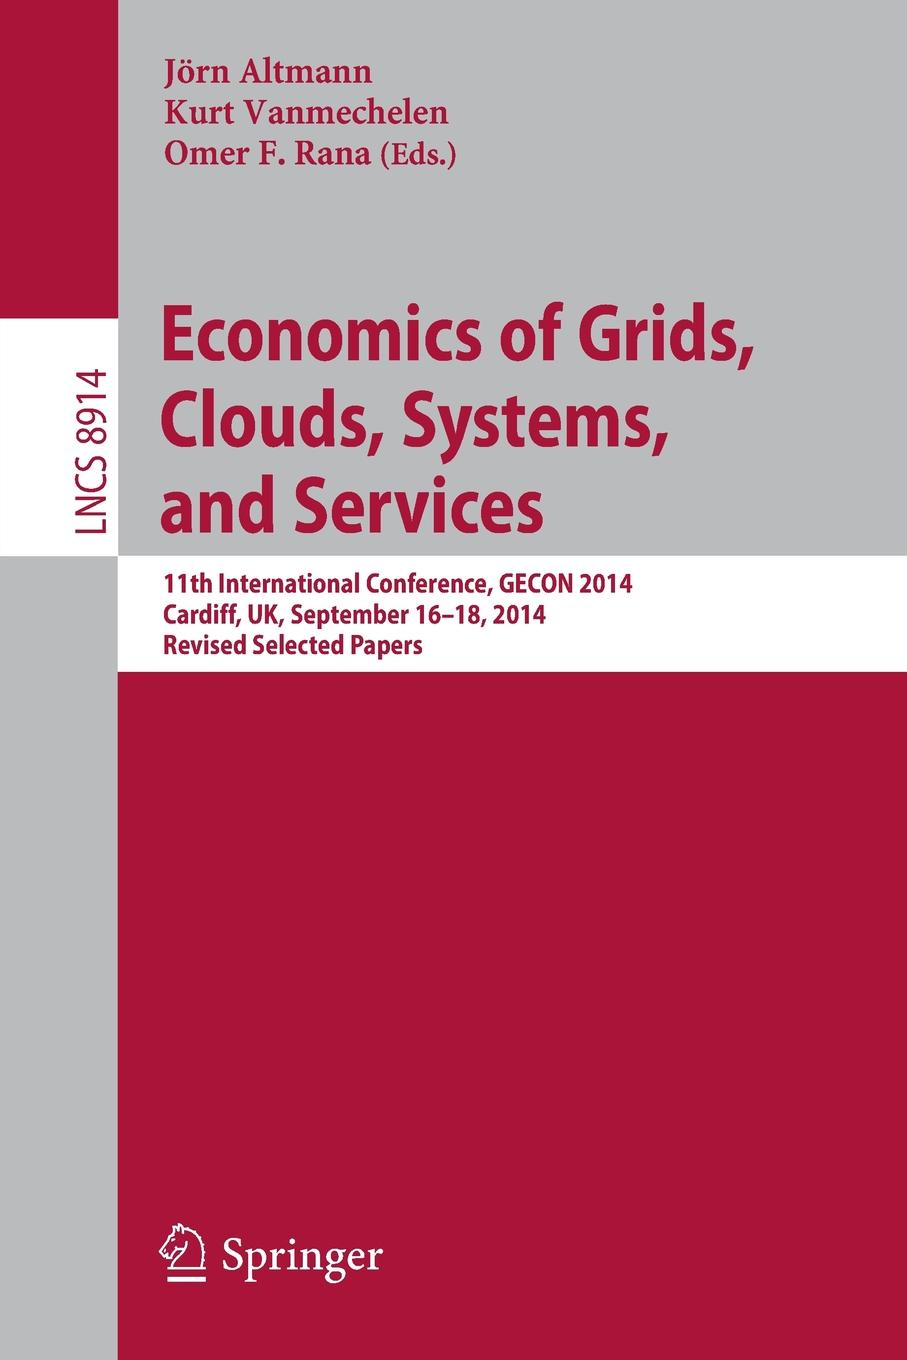 Economics of Grids, Clouds, Systems, and Services. 11th International Conference, GECON 2014, Cardiff, UK, September 16-18, 2014. Revised Selected Papers. culture club cardiff